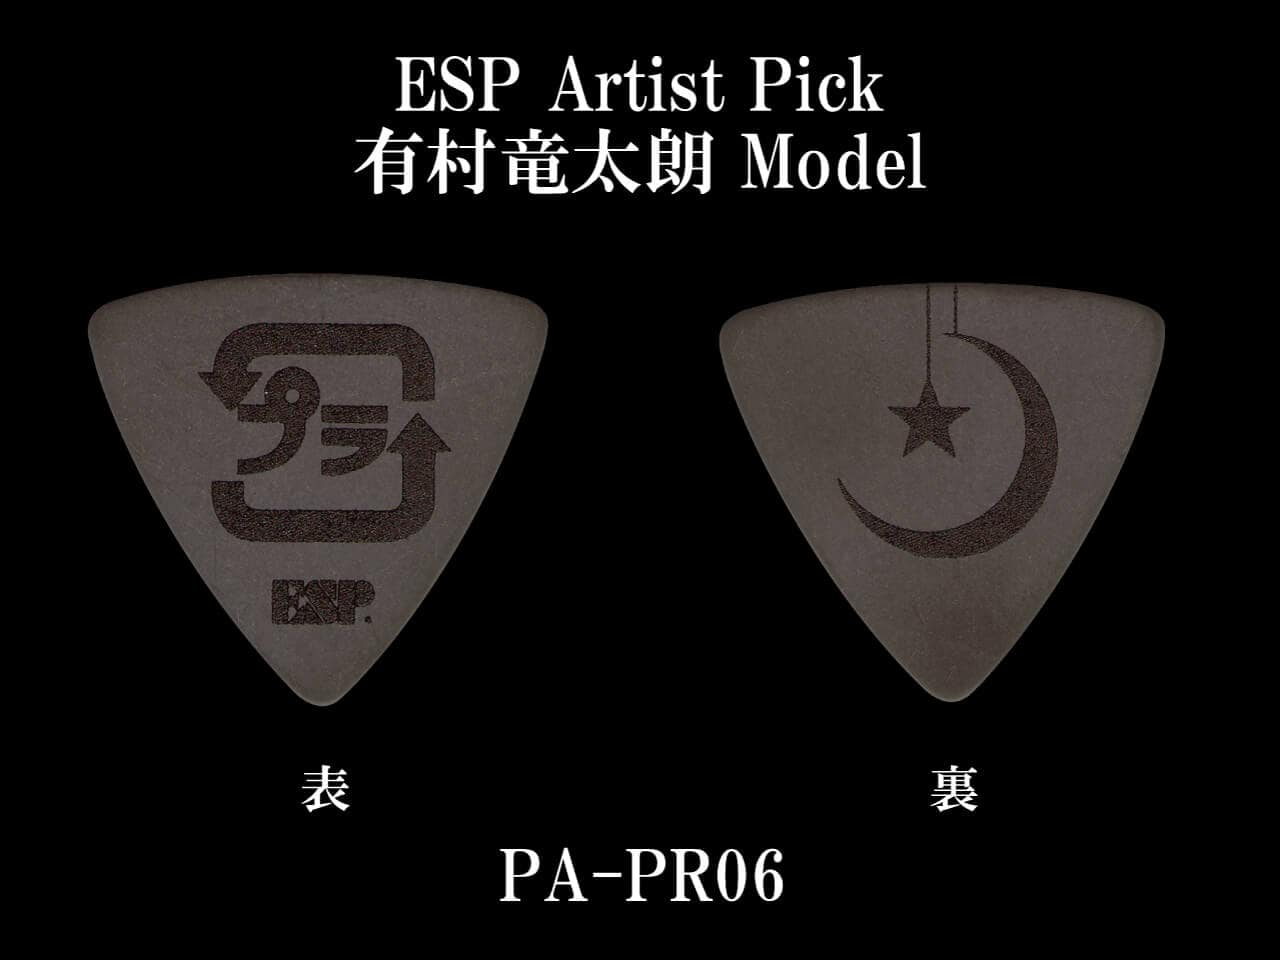 ESP(イーエスピー) Artist Pick Series PA-PR06 (PlasticTree/有村竜太朗 Model)